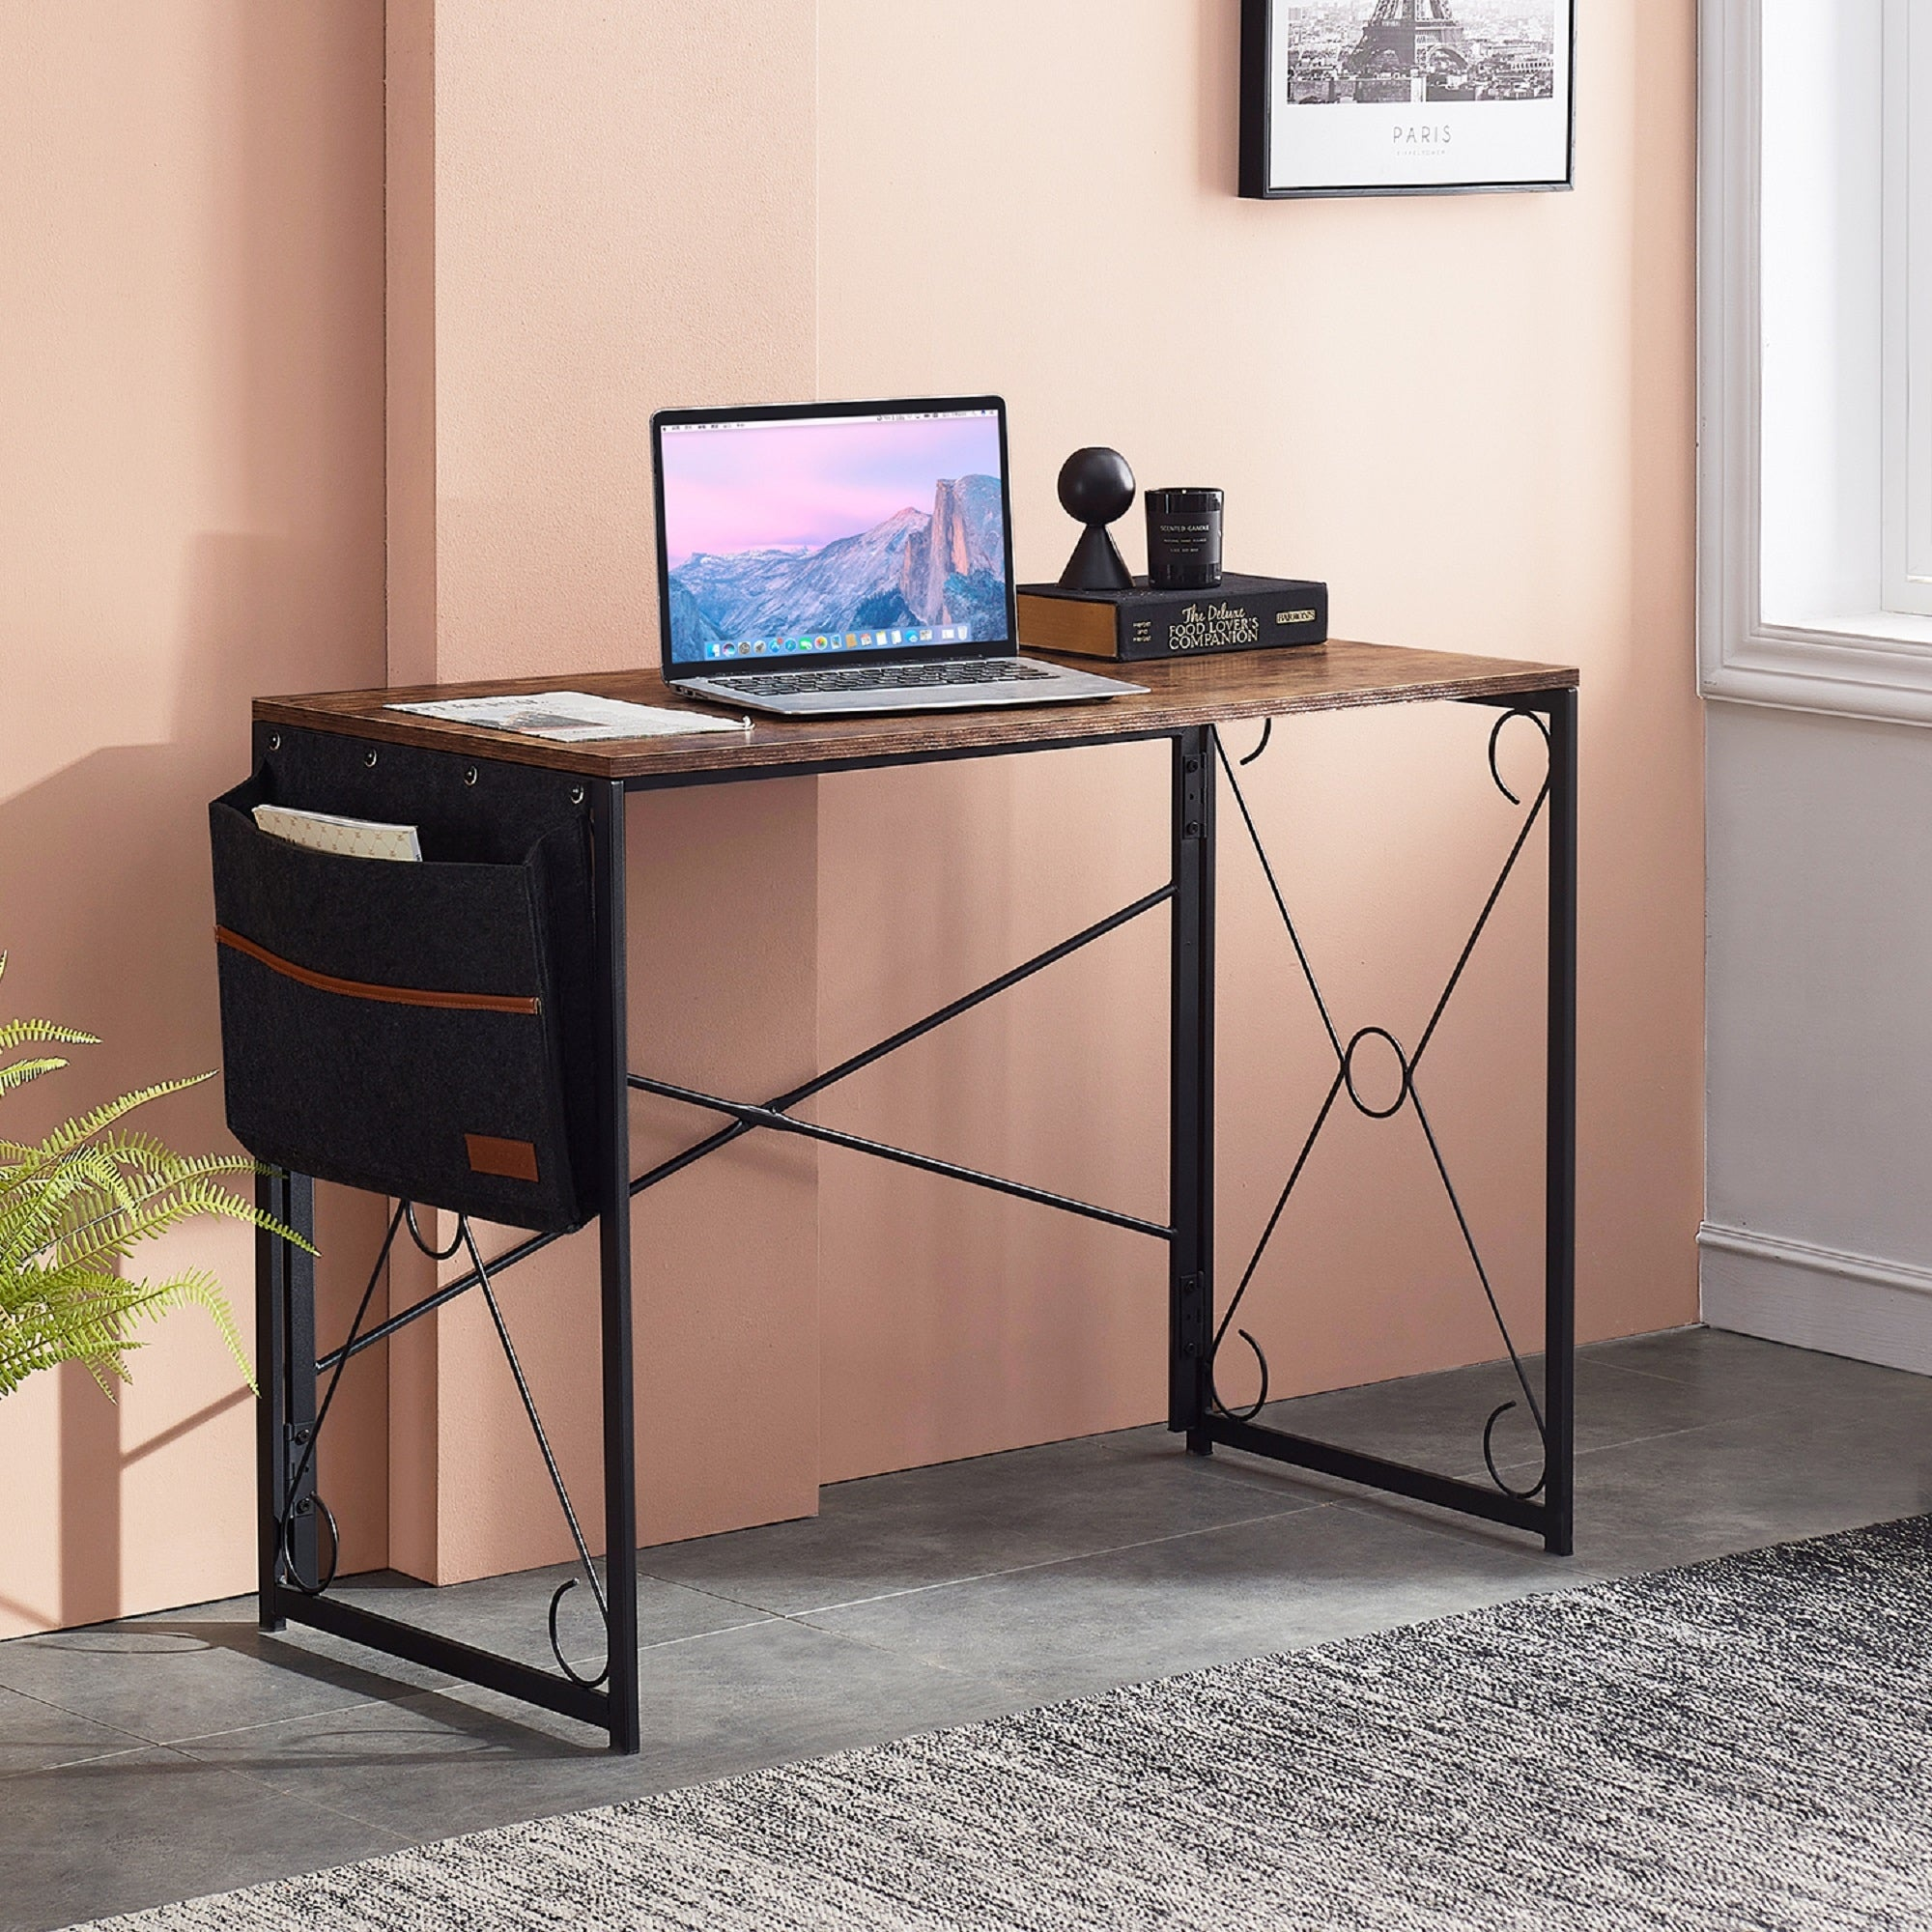 28.6X34.6X25.3CM File Cabinets Desk Storage Unit Organizer Strong Collision Resistance Organizational Needs Confidential Standard Desks Aluminum Alloy,MDF Home Office Furniture